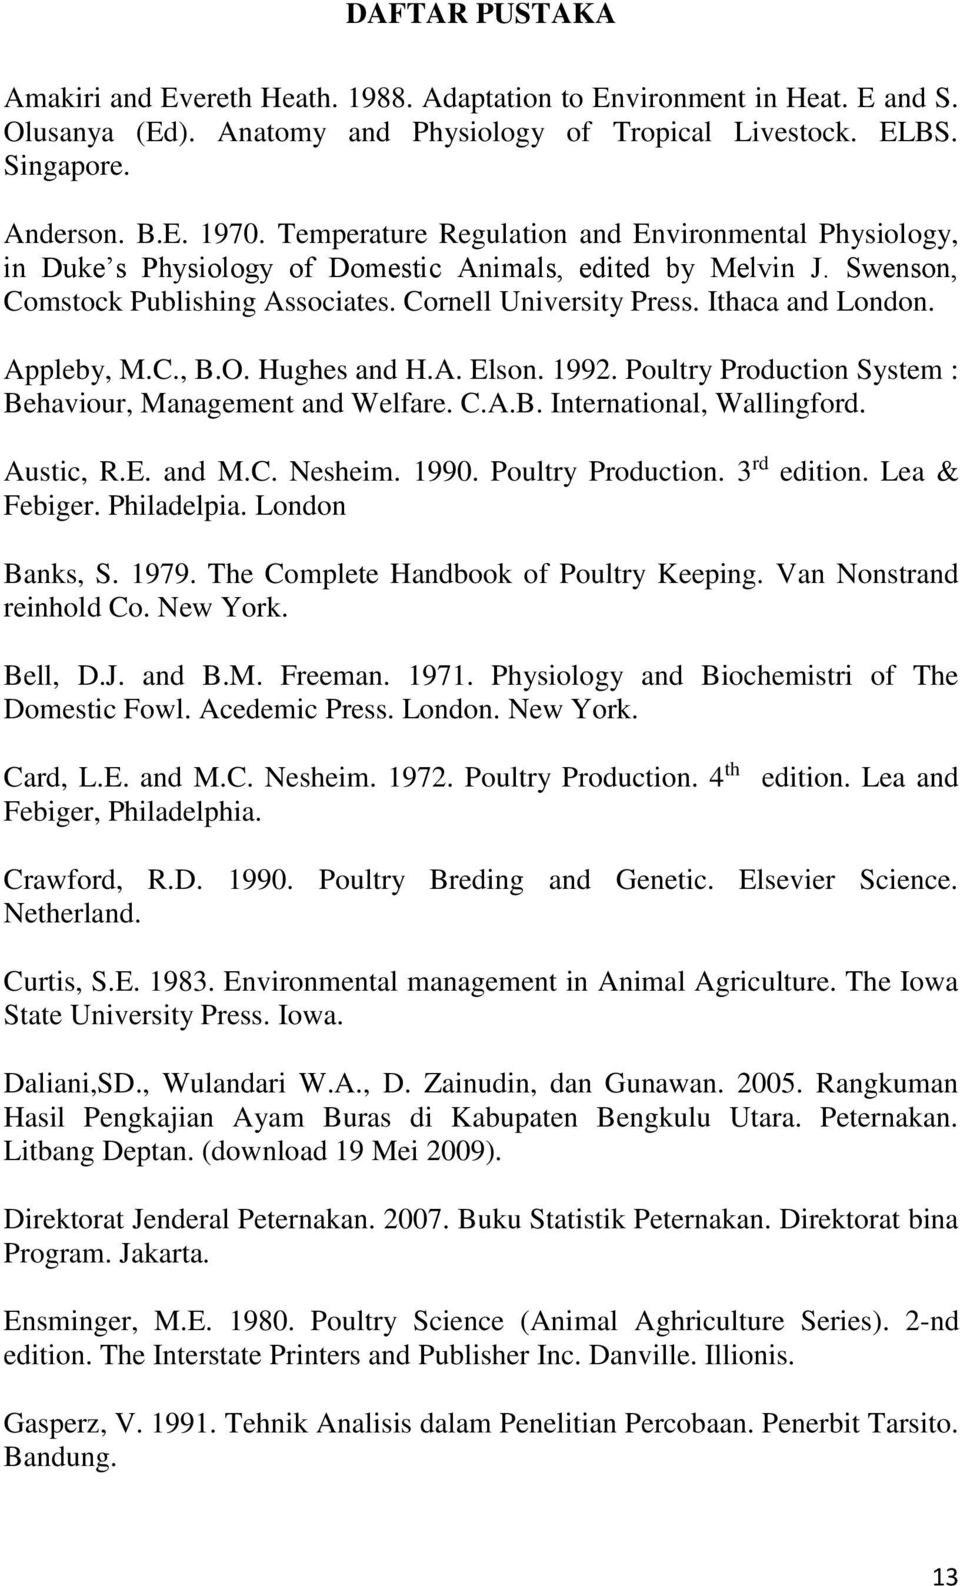 Appleby, M.C., B.O. Hughes and H.A. Elson. 1992. Poultry Production System : Behaviour, Management and Welfare. C.A.B. International, Wallingford. Austic, R.E. and M.C. Nesheim. 1990.